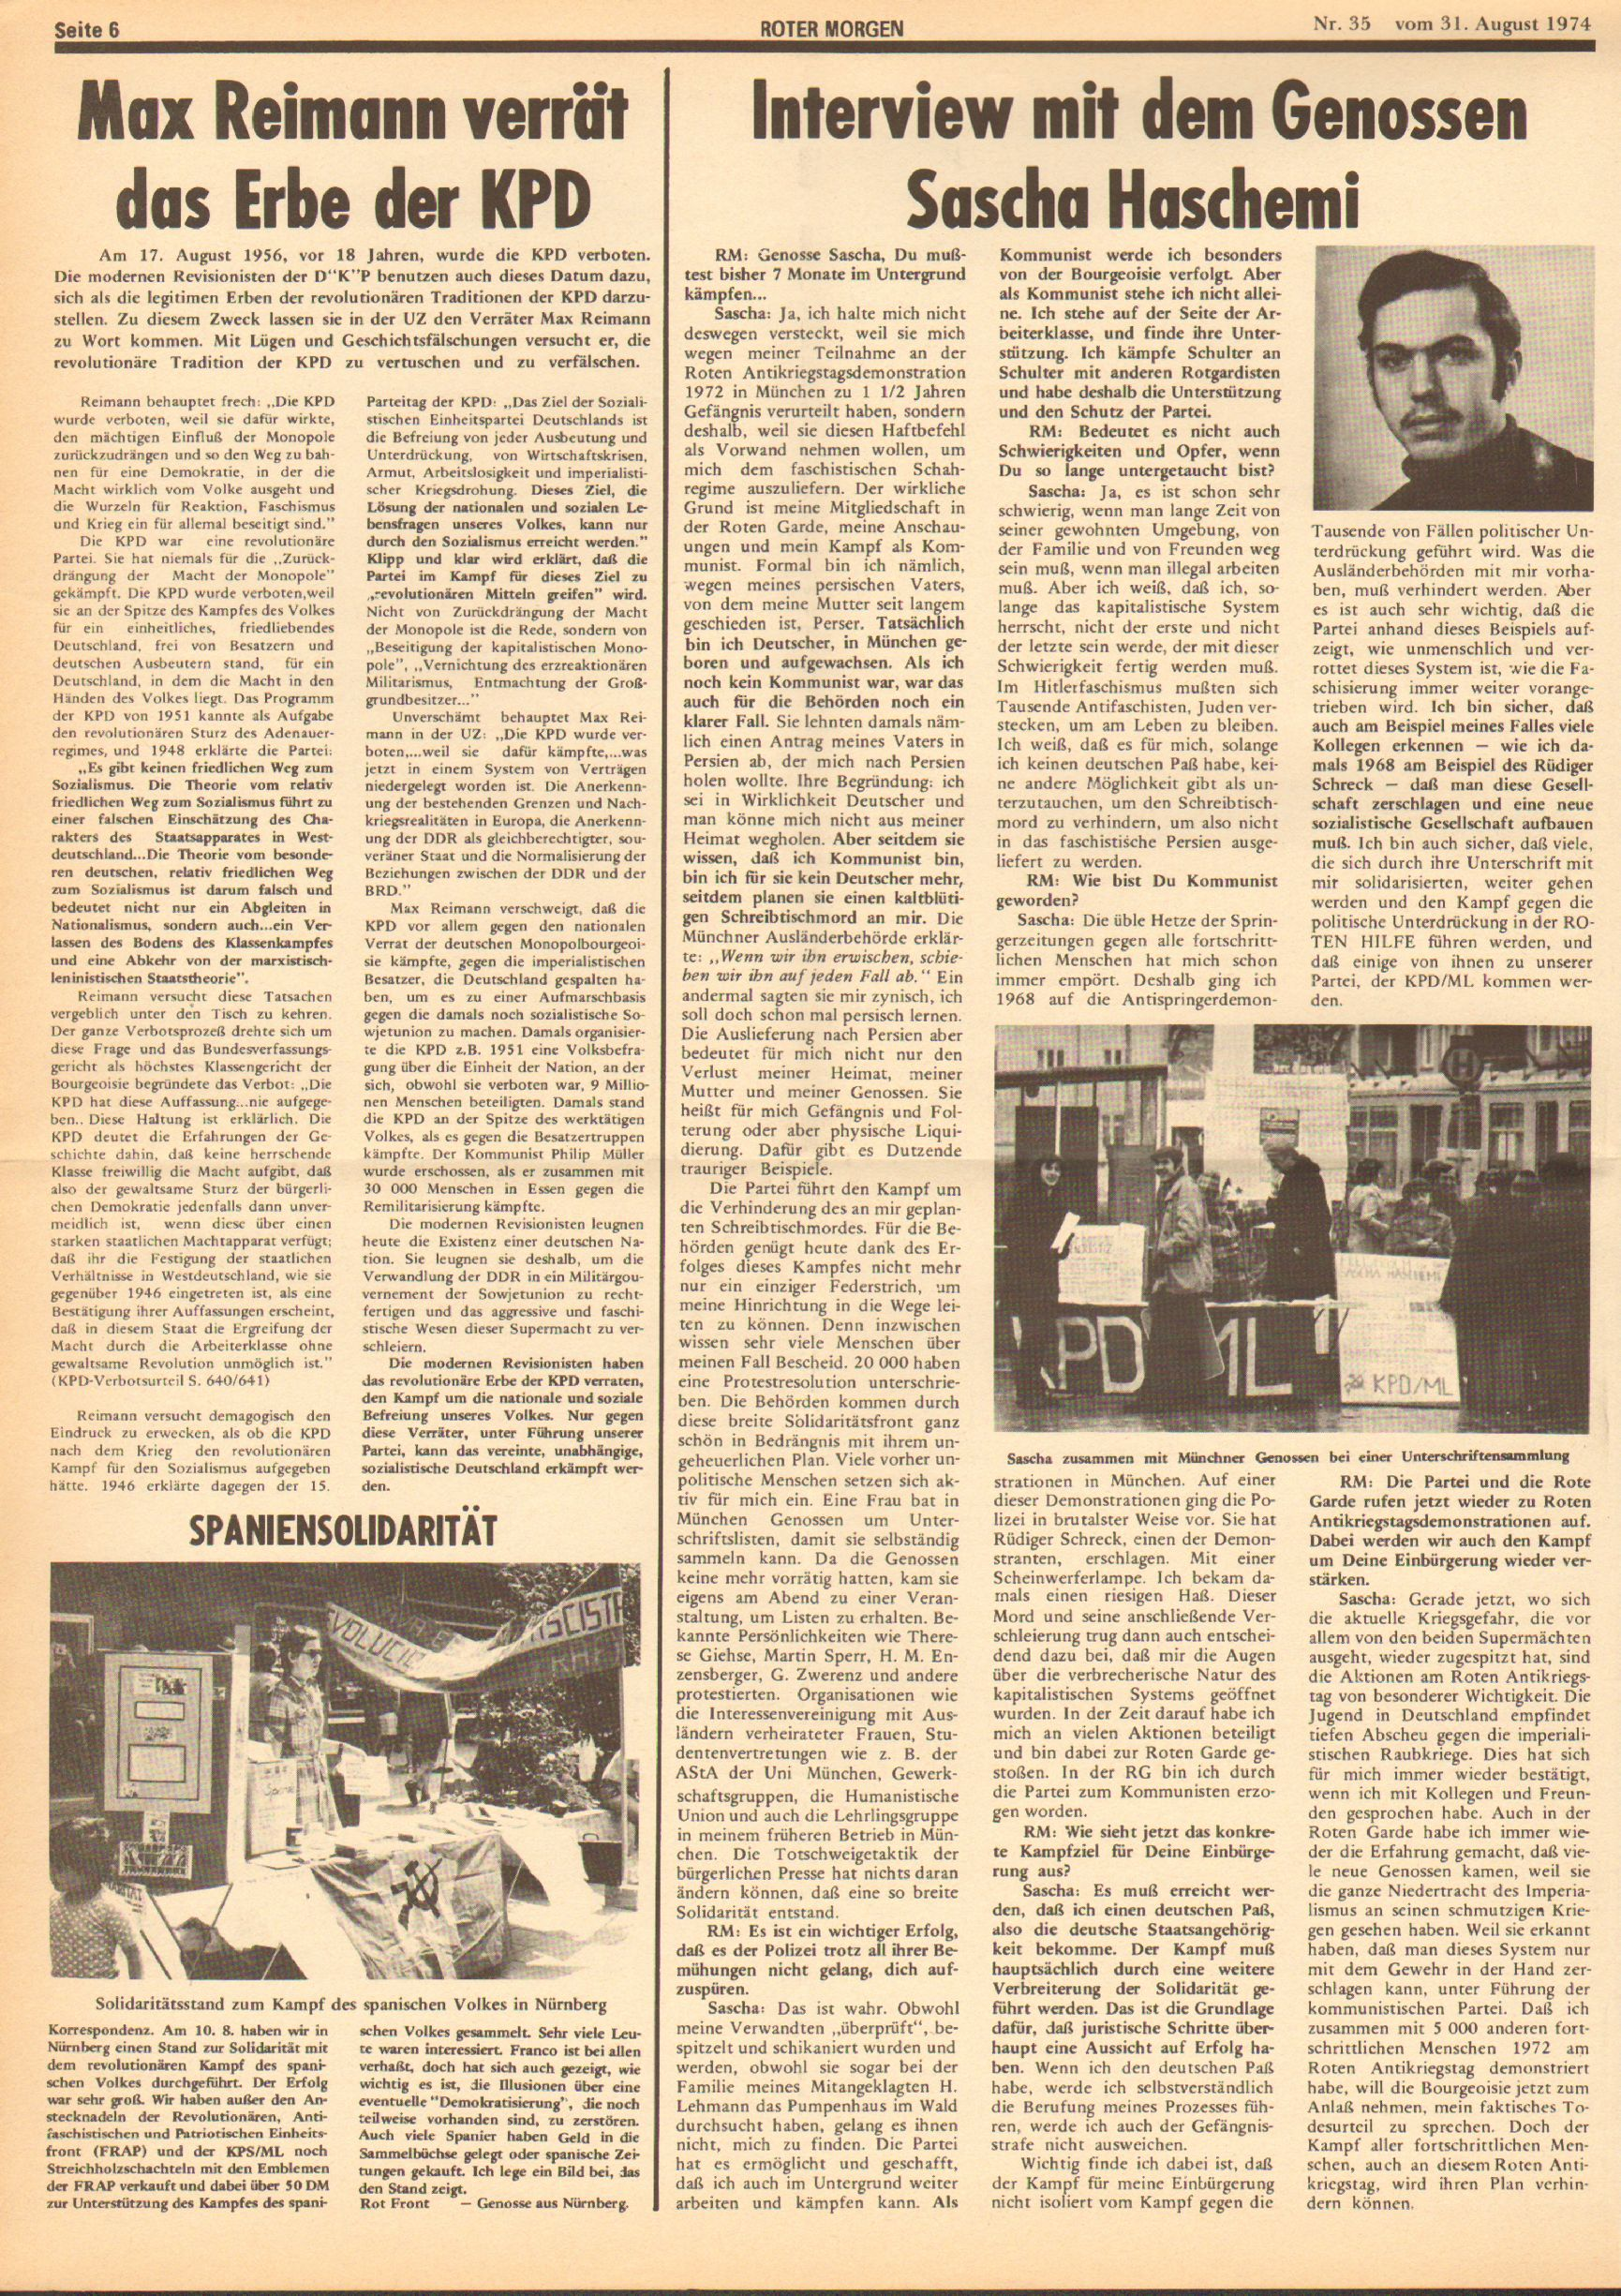 Roter Morgen, 8. Jg., 31. August 1974, Nr. 35, Seite 6